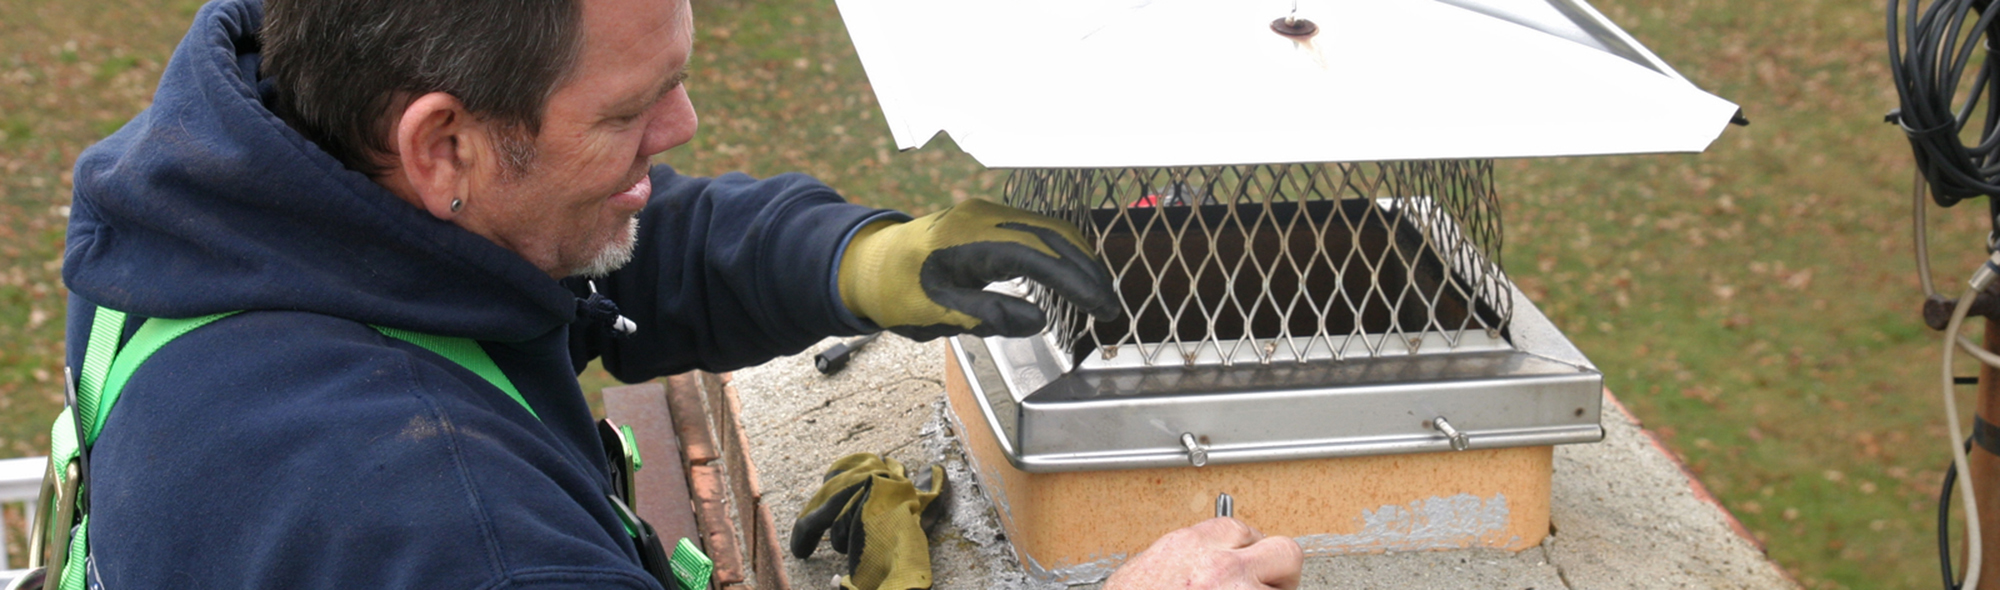 Annapolis MD chimney cap repair from leaky chimney